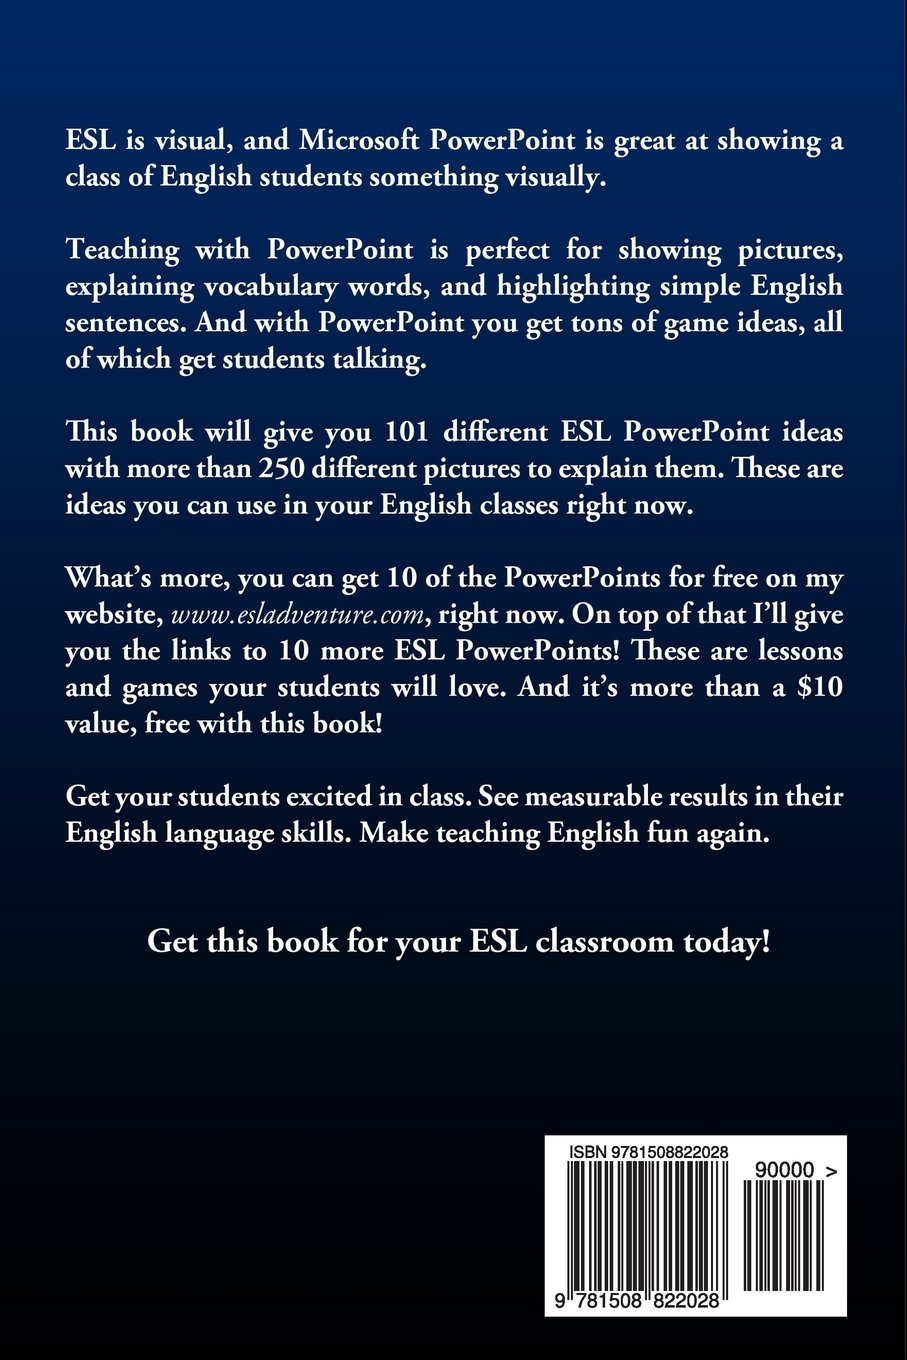 Teaching English: 101 ESL PowerPoint Ideas That Get Students Talking